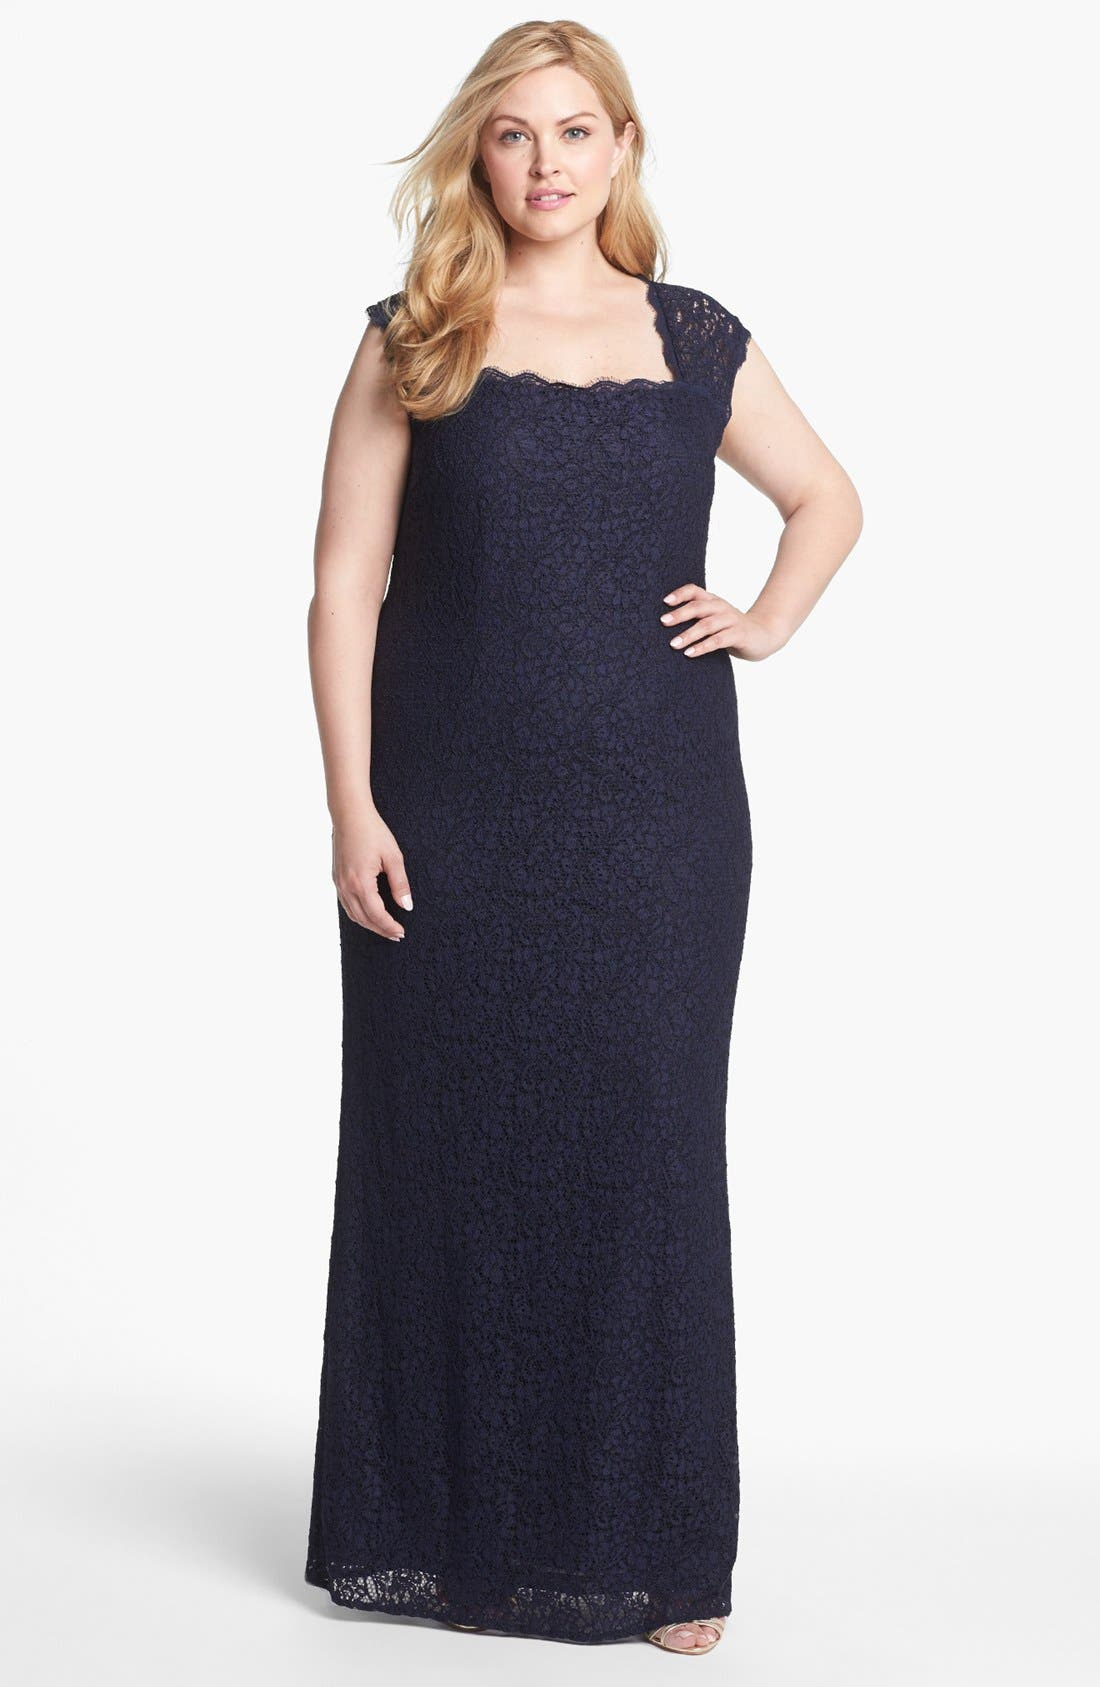 Alternate Image 1 Selected - Adrianna Papell Back Cutout Lace Column Gown (Plus Size)